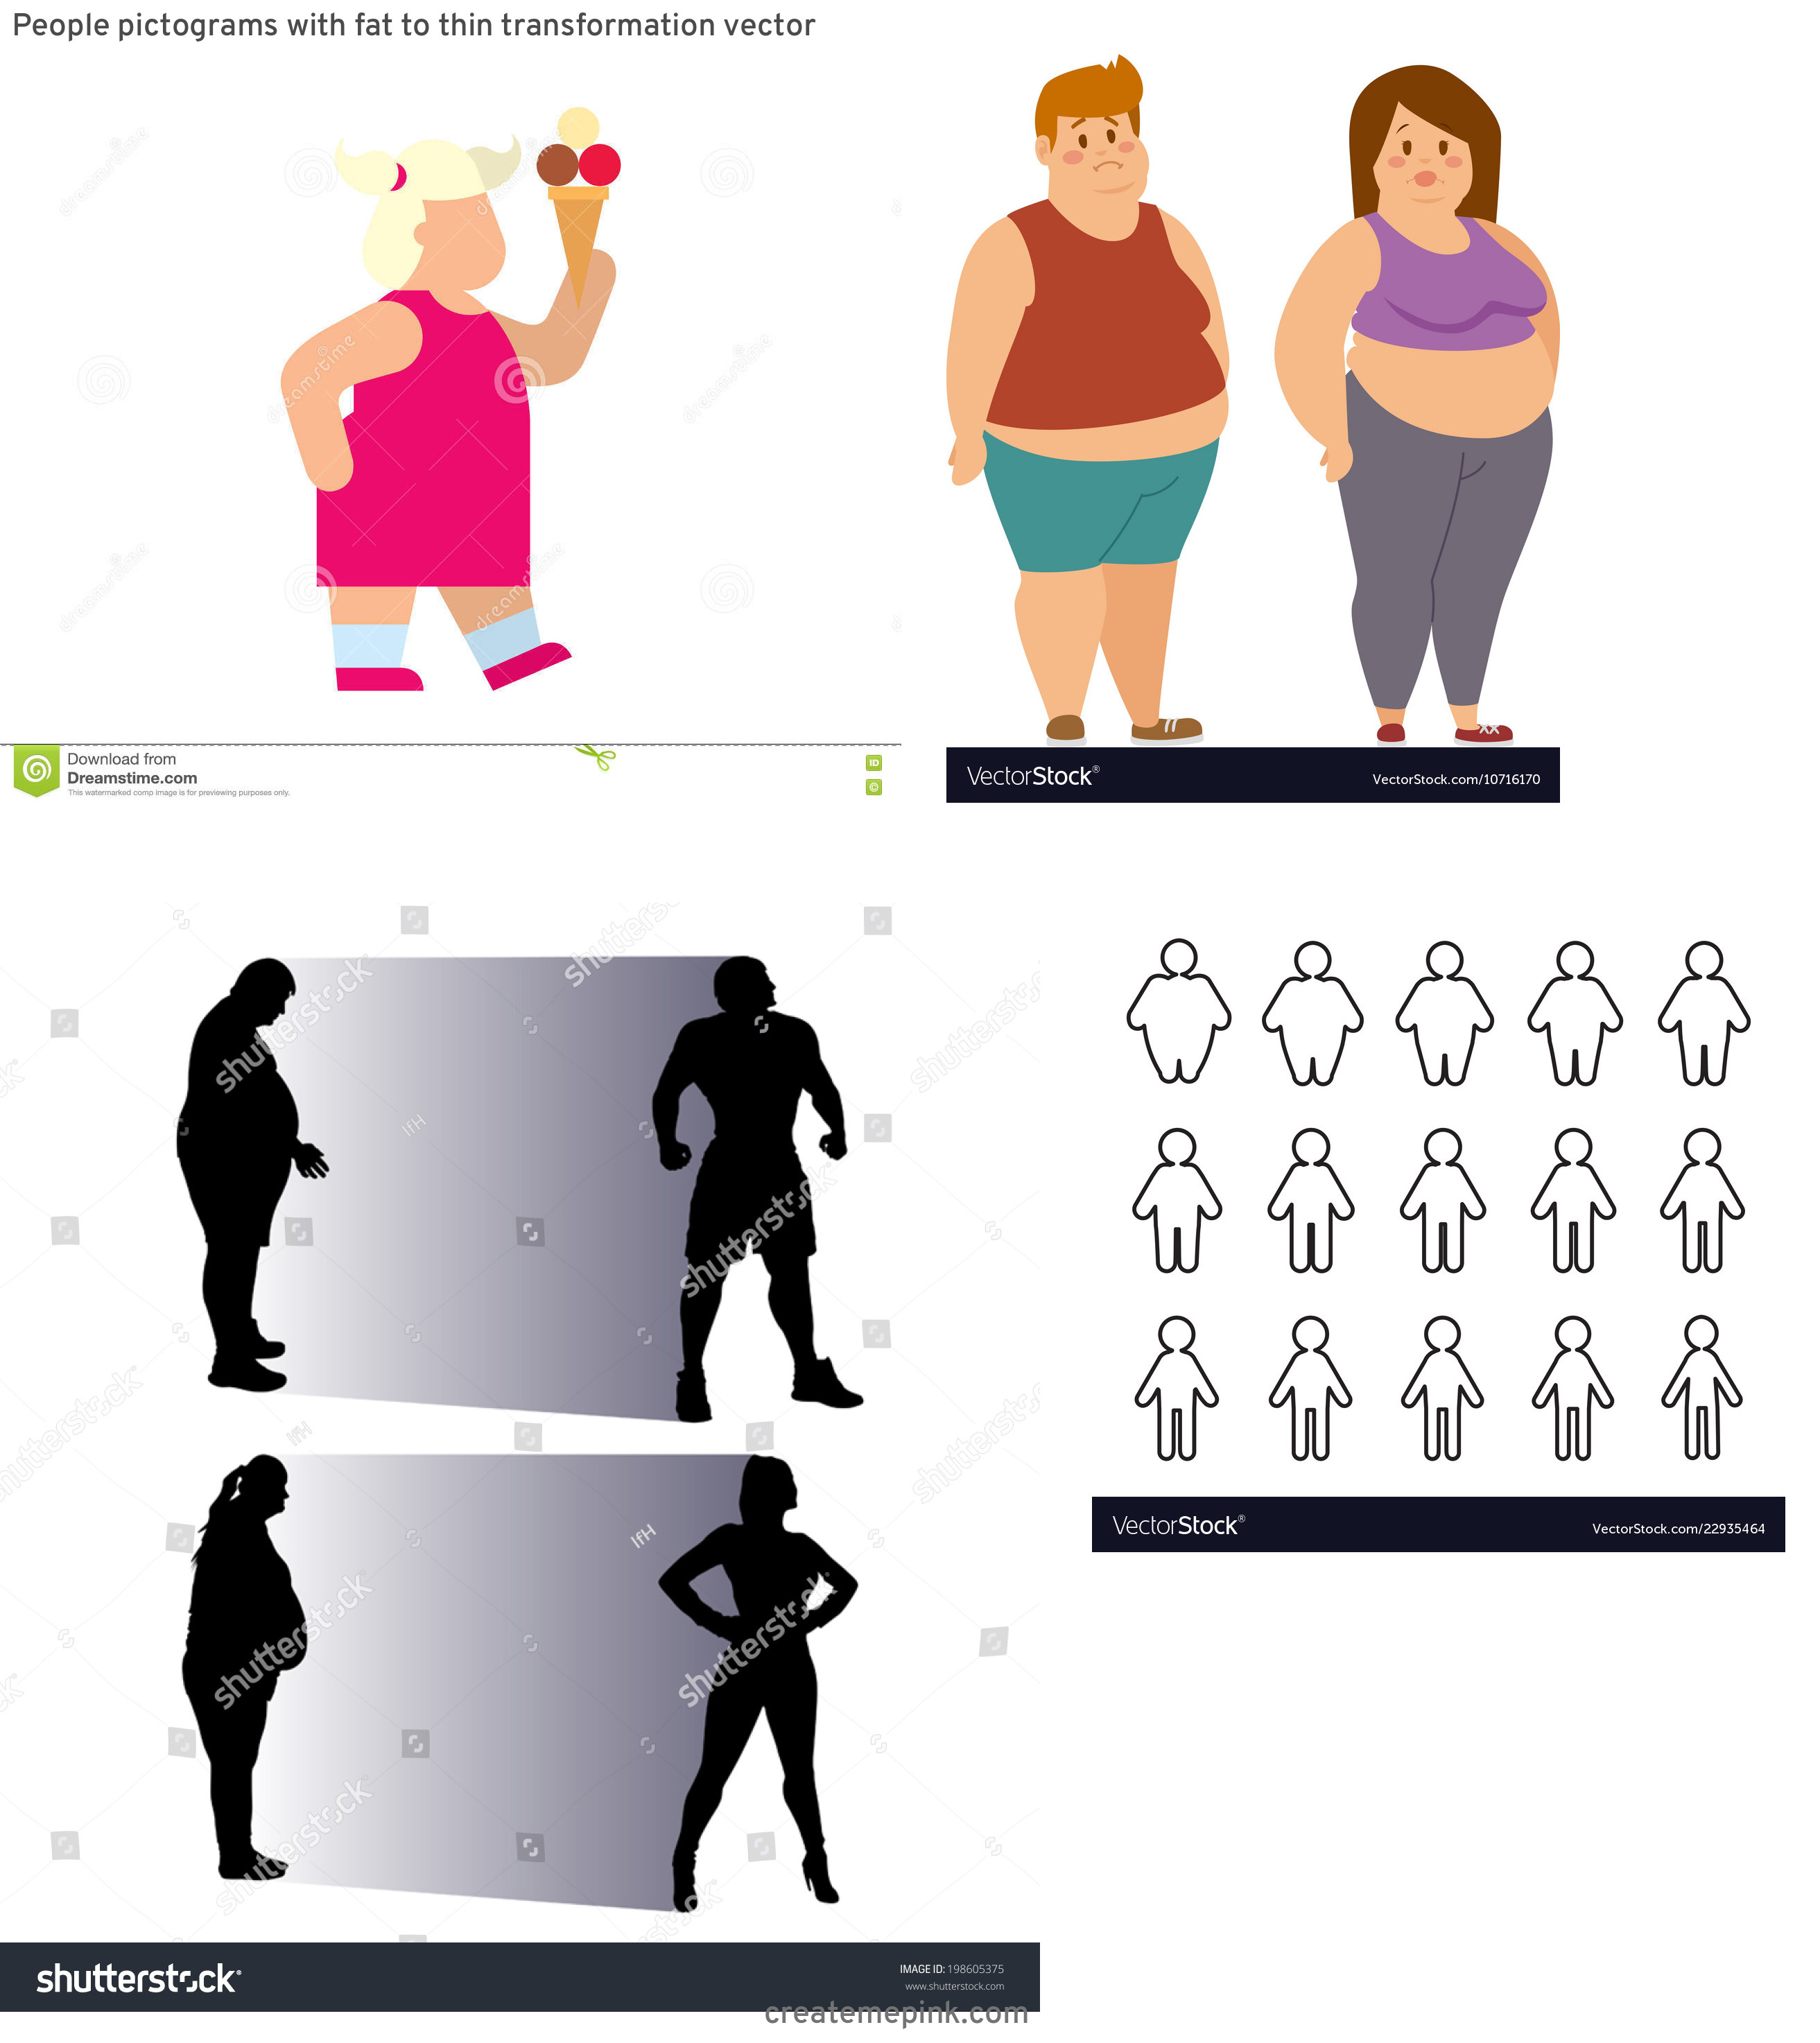 People Silhouette Vector Illustration Of Fat: People Pictograms With Fat To Thin Transformation Vector